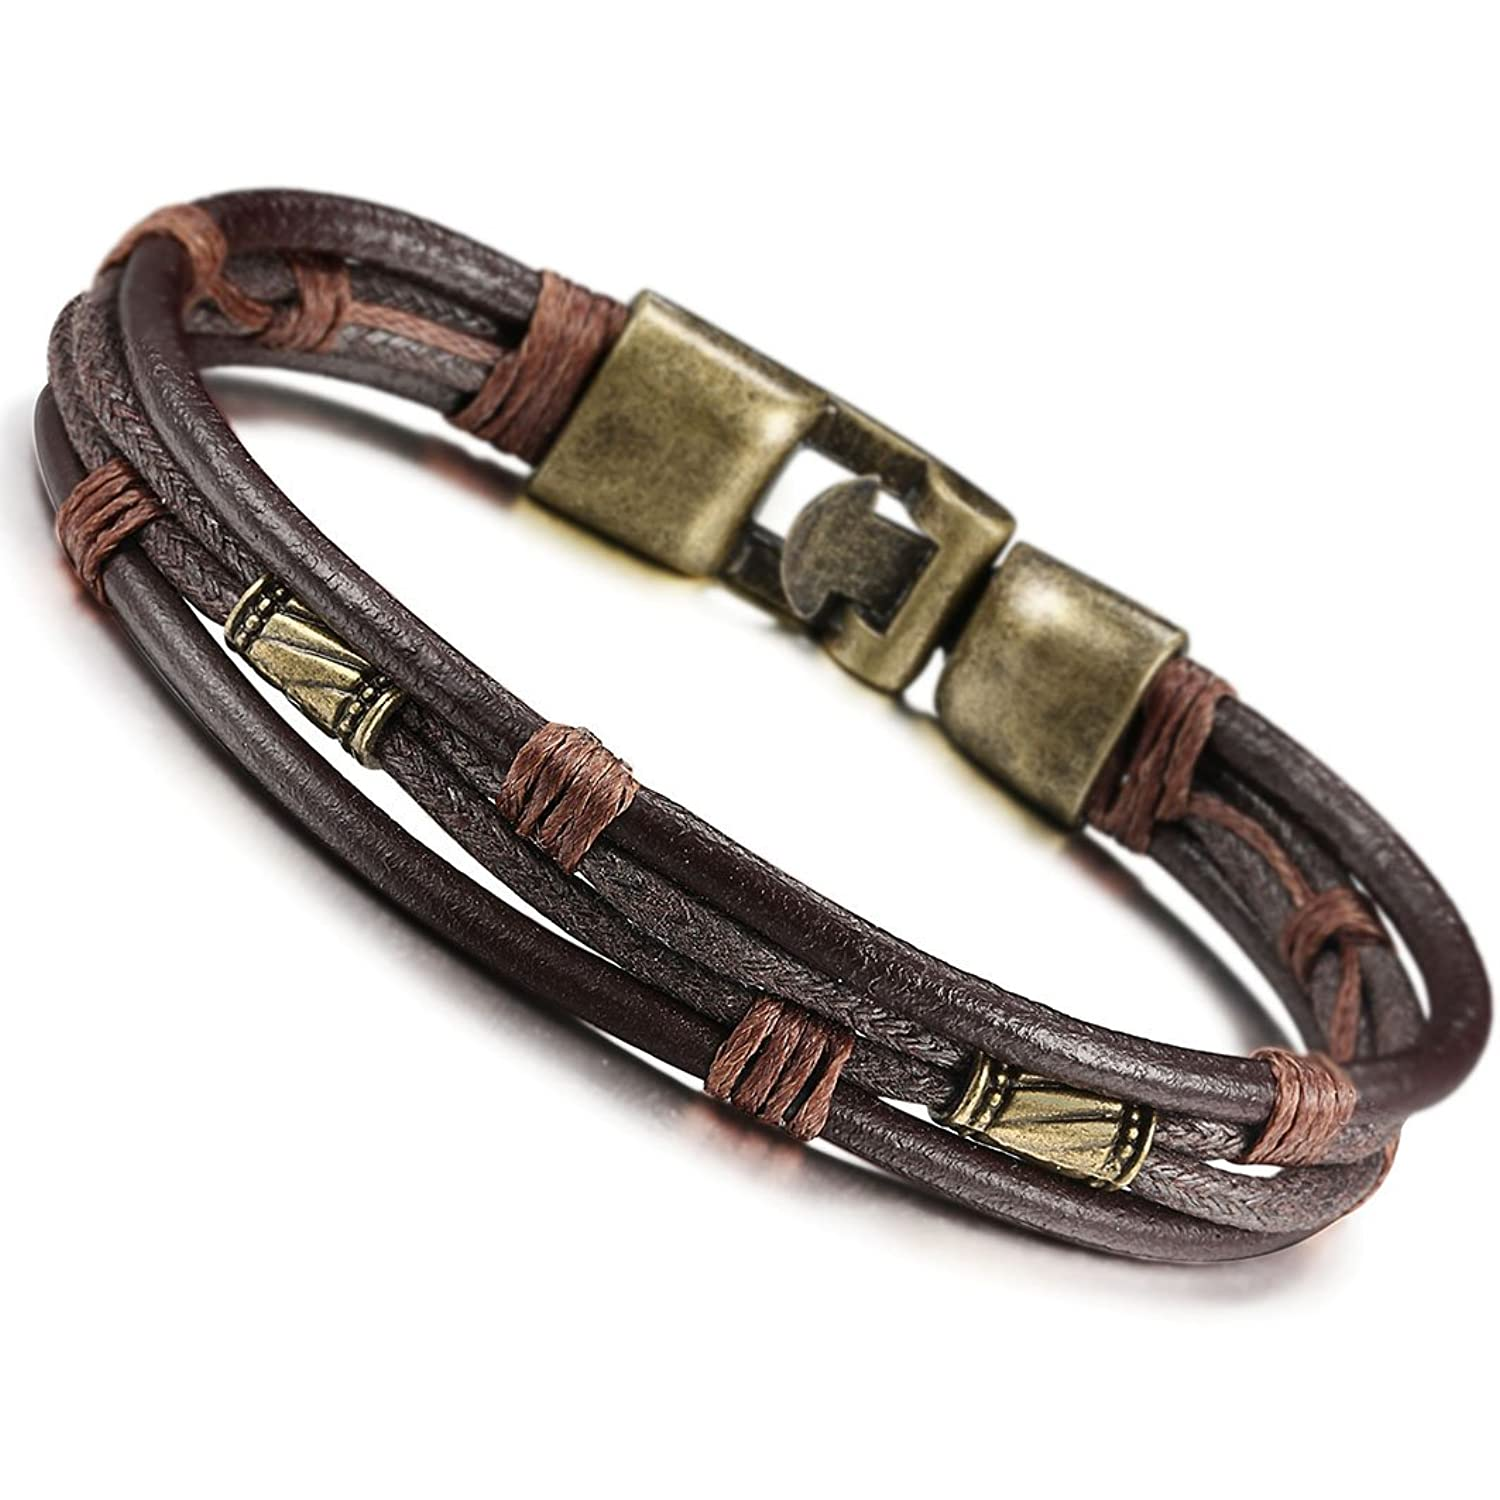 Amazon.com: Jstyle Mens Vintage Leather Wrist Band Brown Rope ...